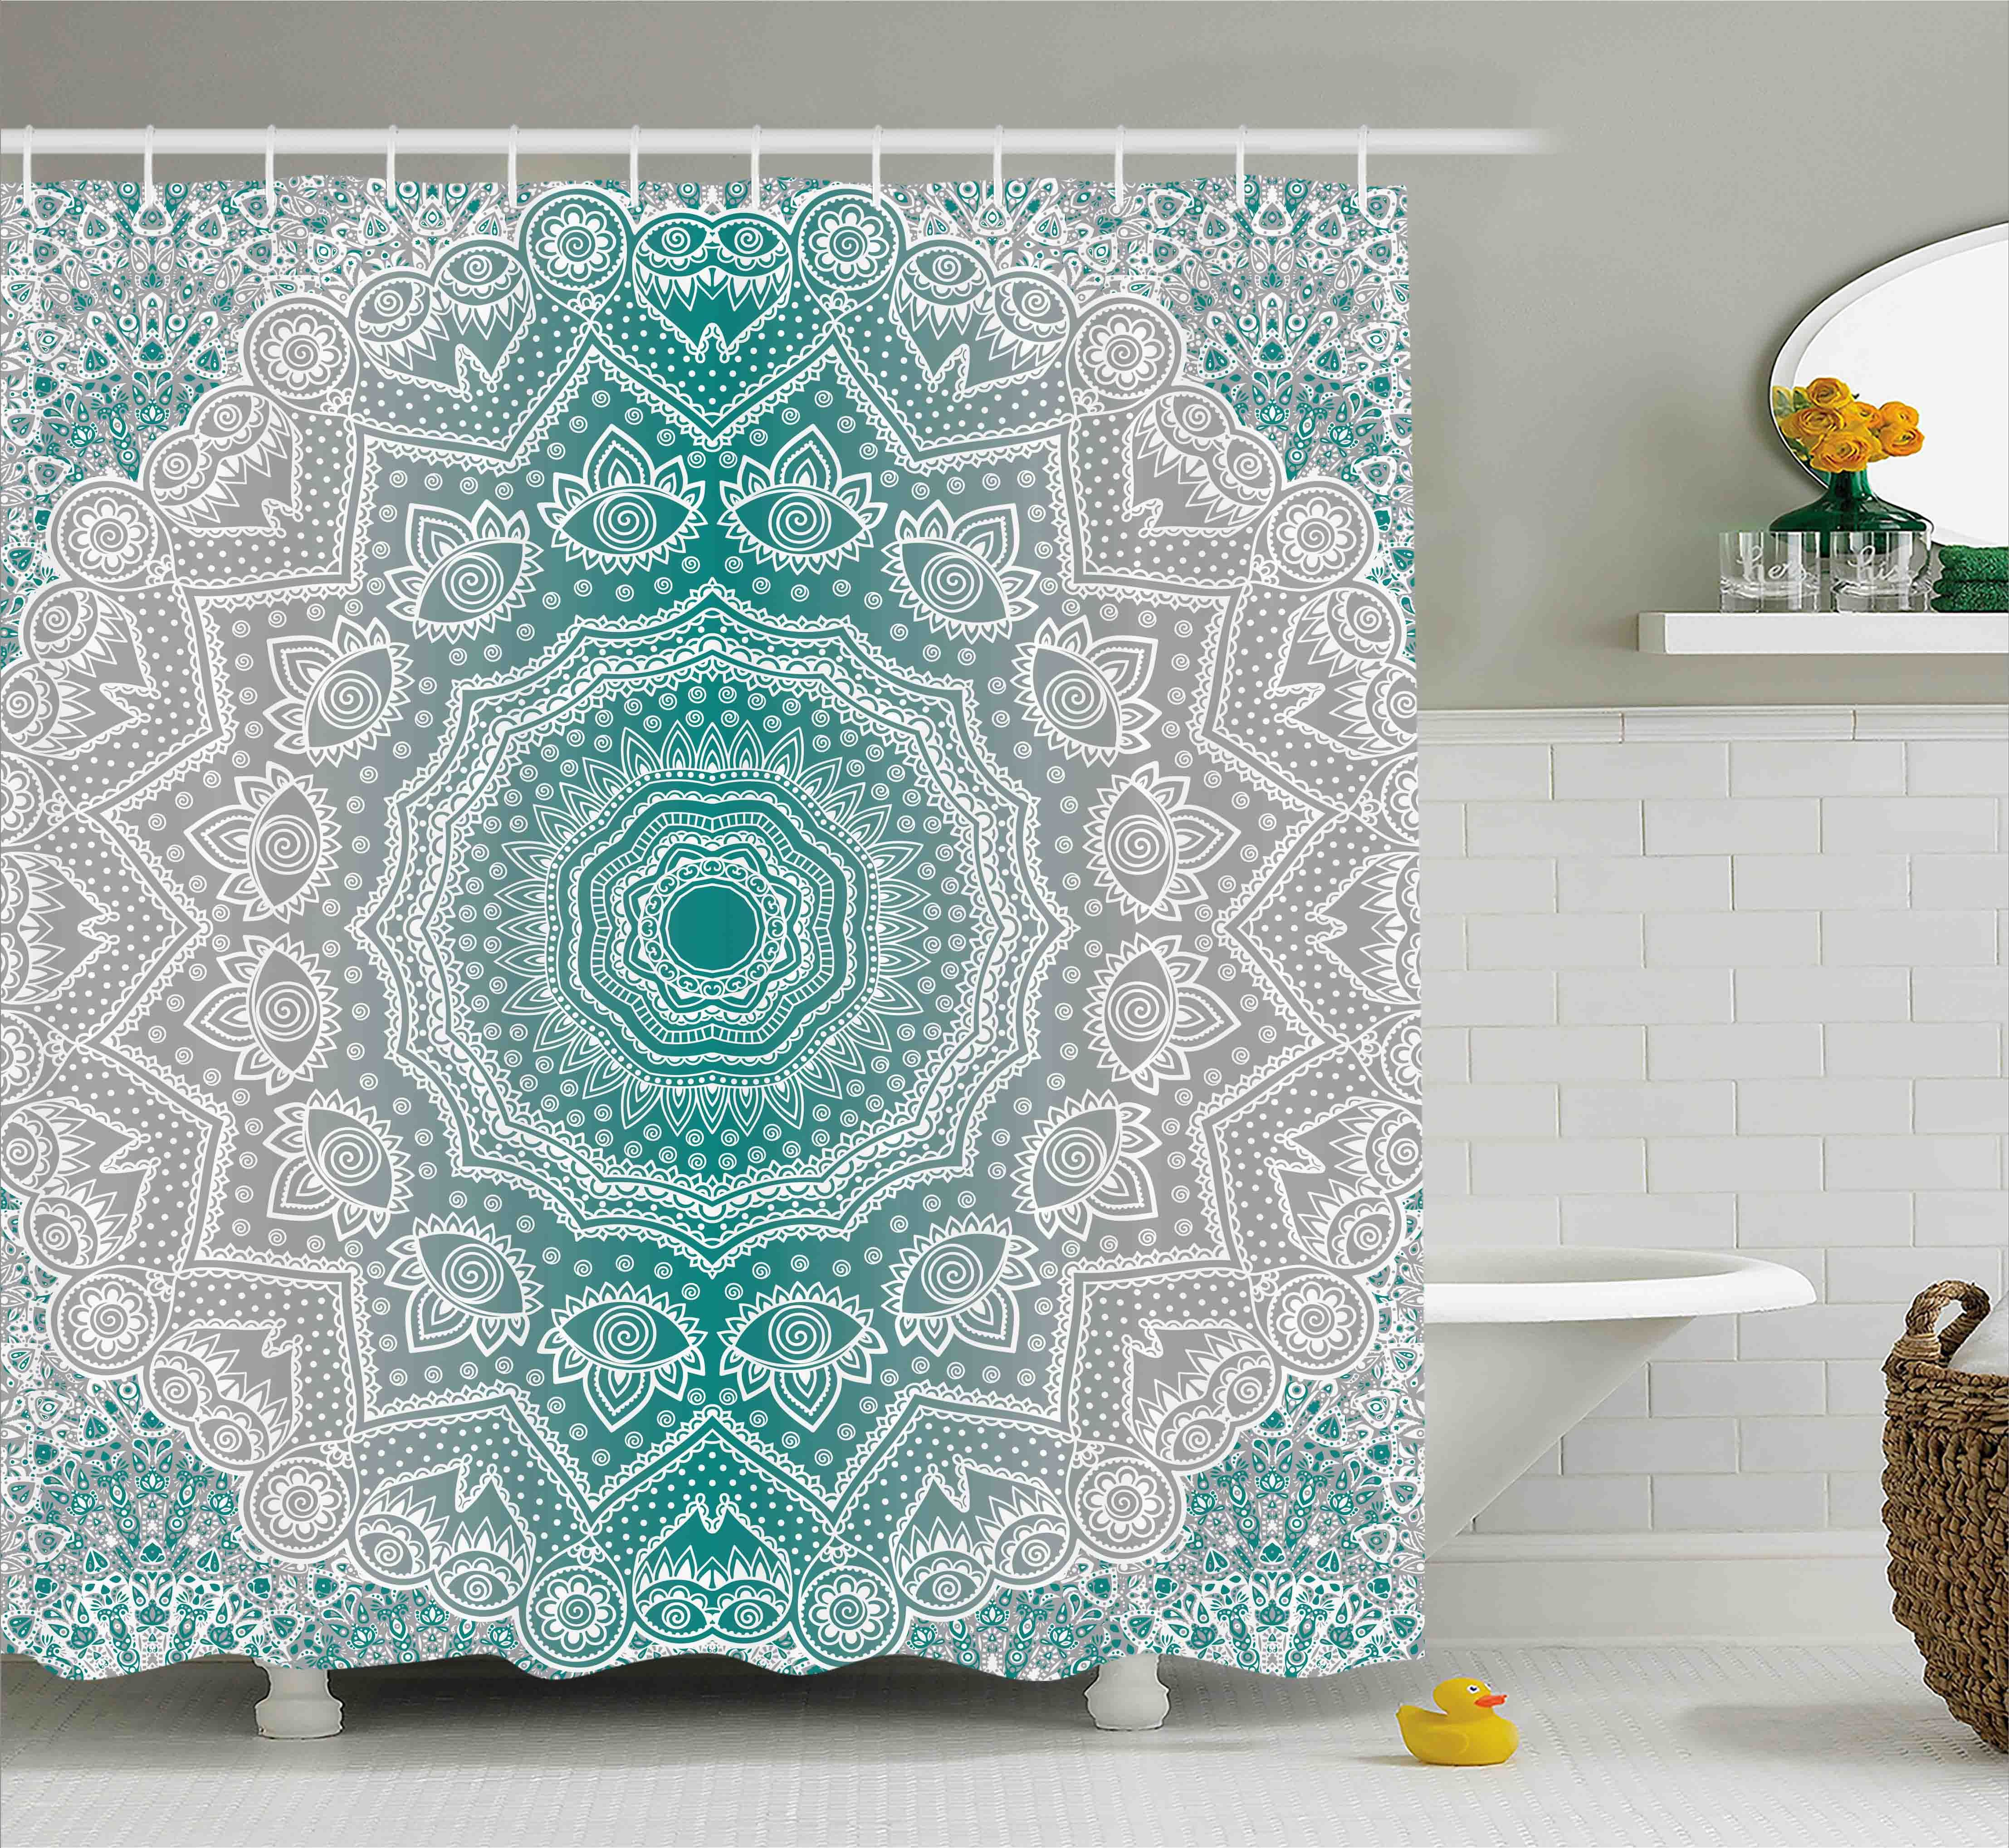 Grey And Teal Shower Curtain Mandala Ombre Sacred Geometry Occult Pattern With Flower Lines Display Artwork Fabric Bathroom Set Hooks